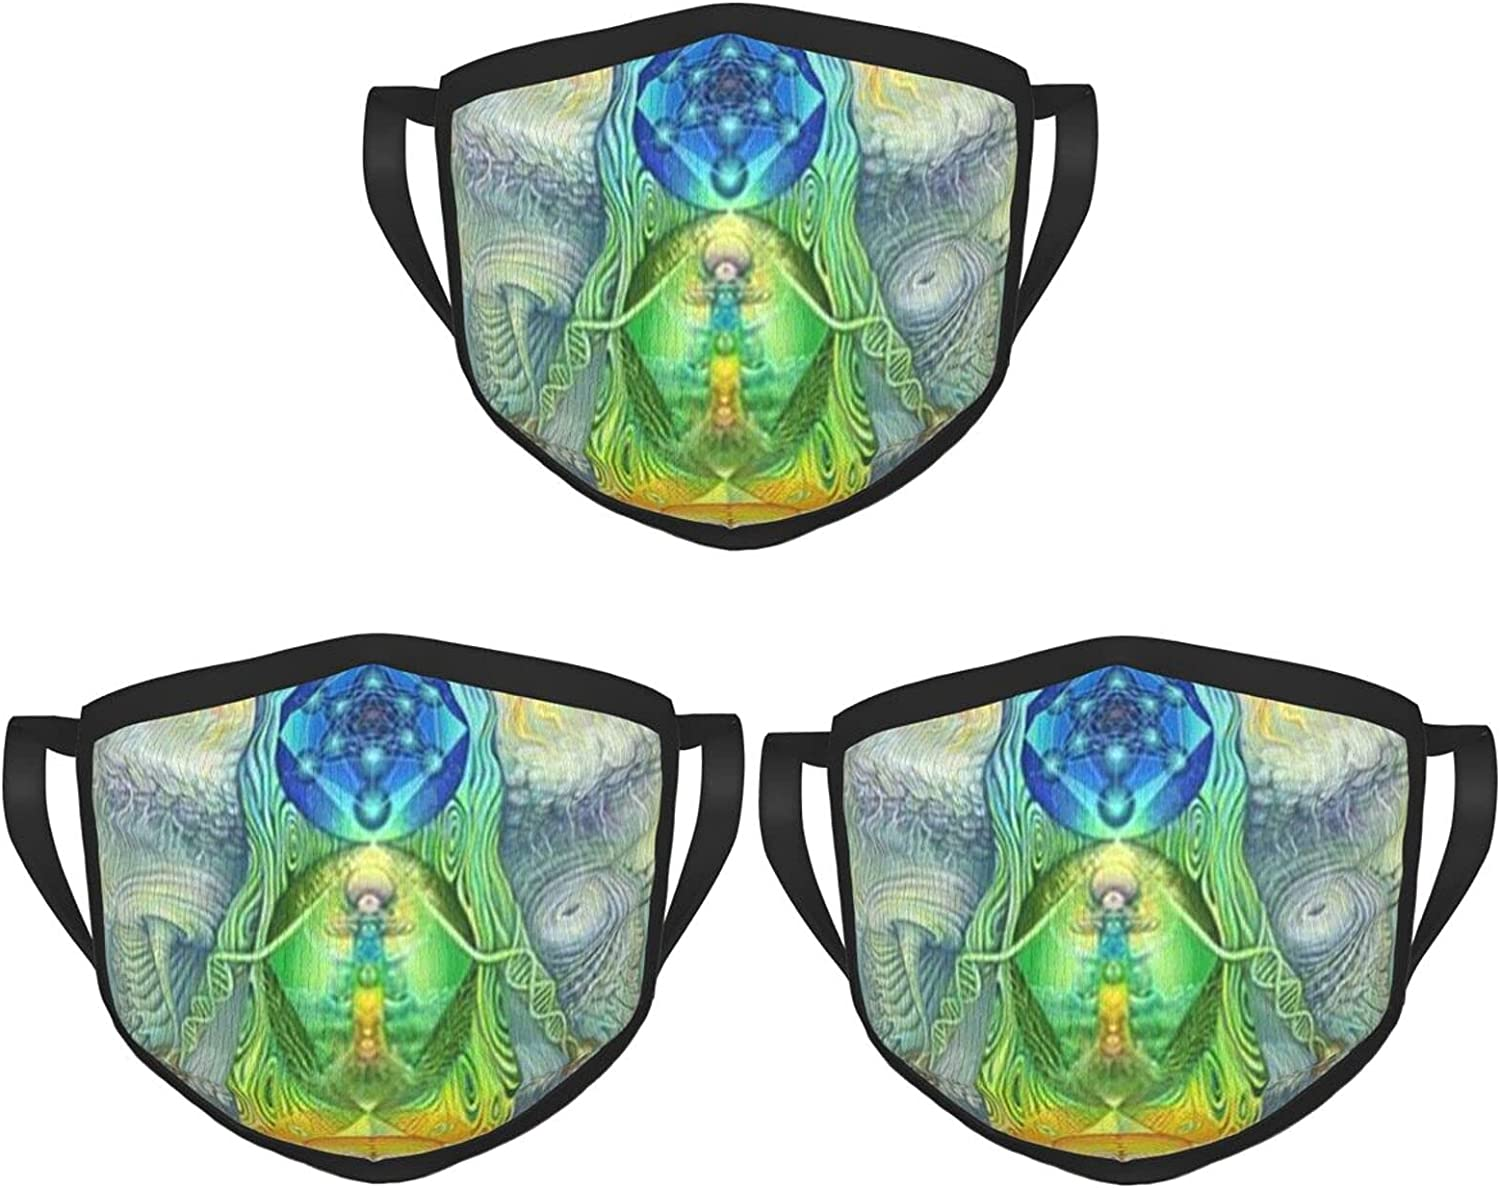 Balaclava Earmuffs Visionary Art Tree Of Life Psychedelic Chakra Spiritual Face Mouth Cover Mask Reusable Windproof Scarf Towel Cover Headwrap